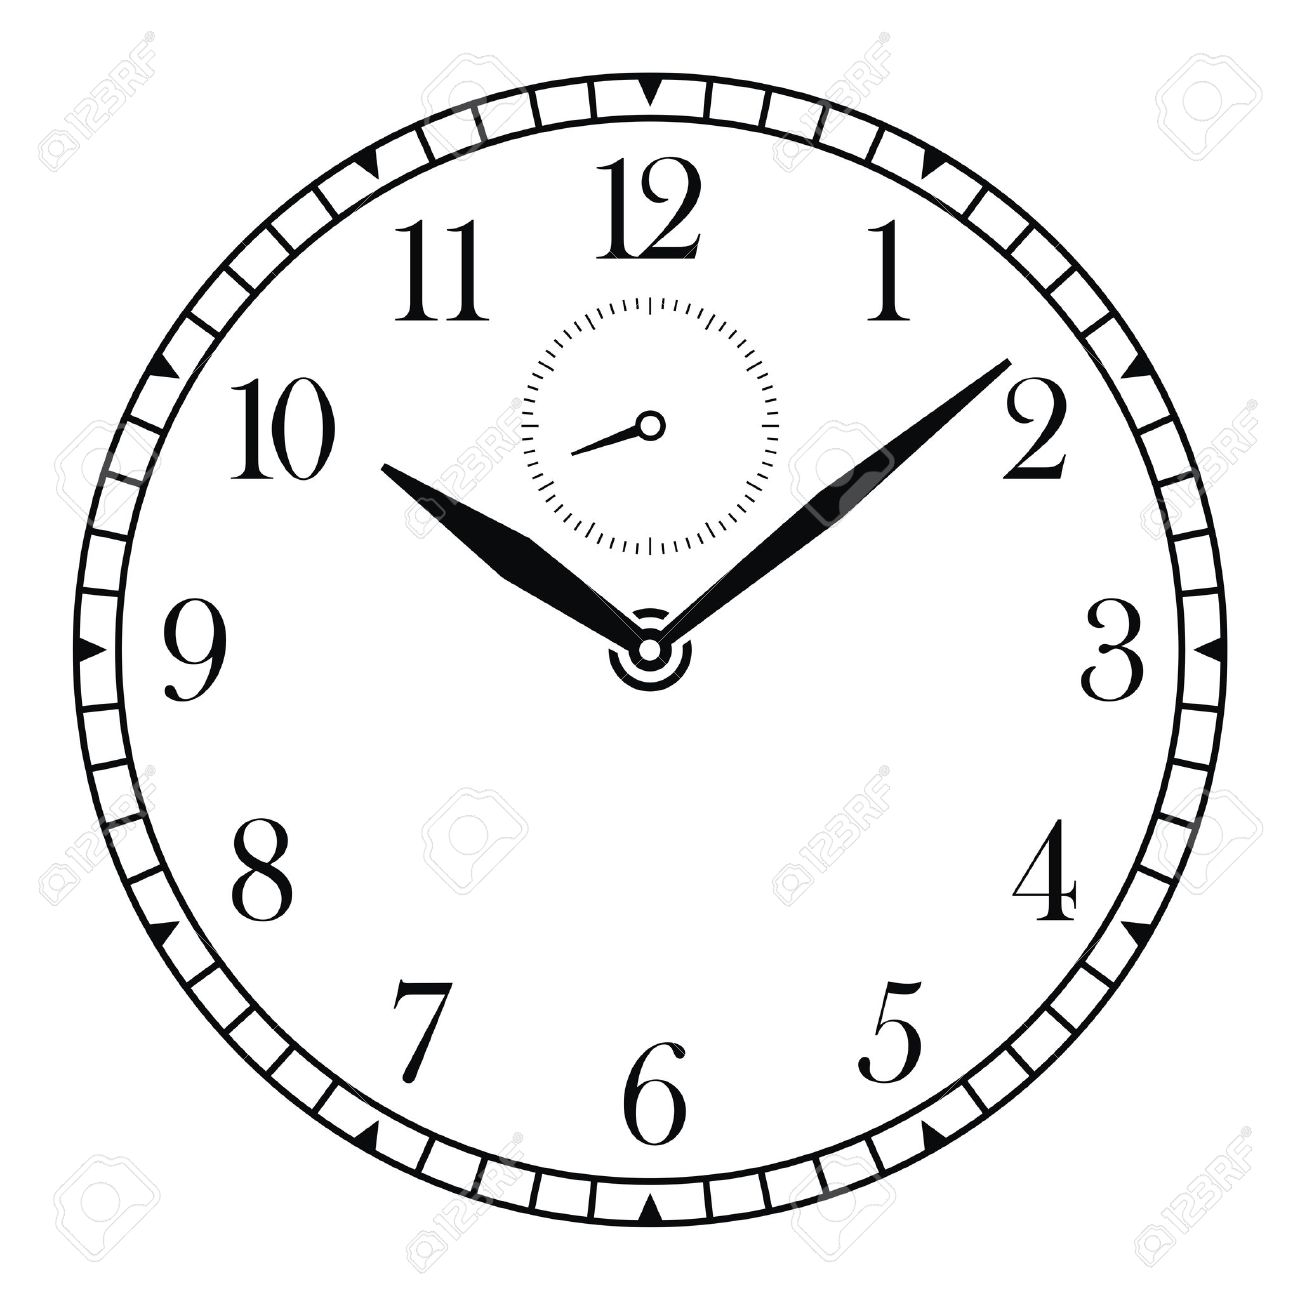 worksheet Clock Face vector clock face and hands royalty free cliparts vectors hands